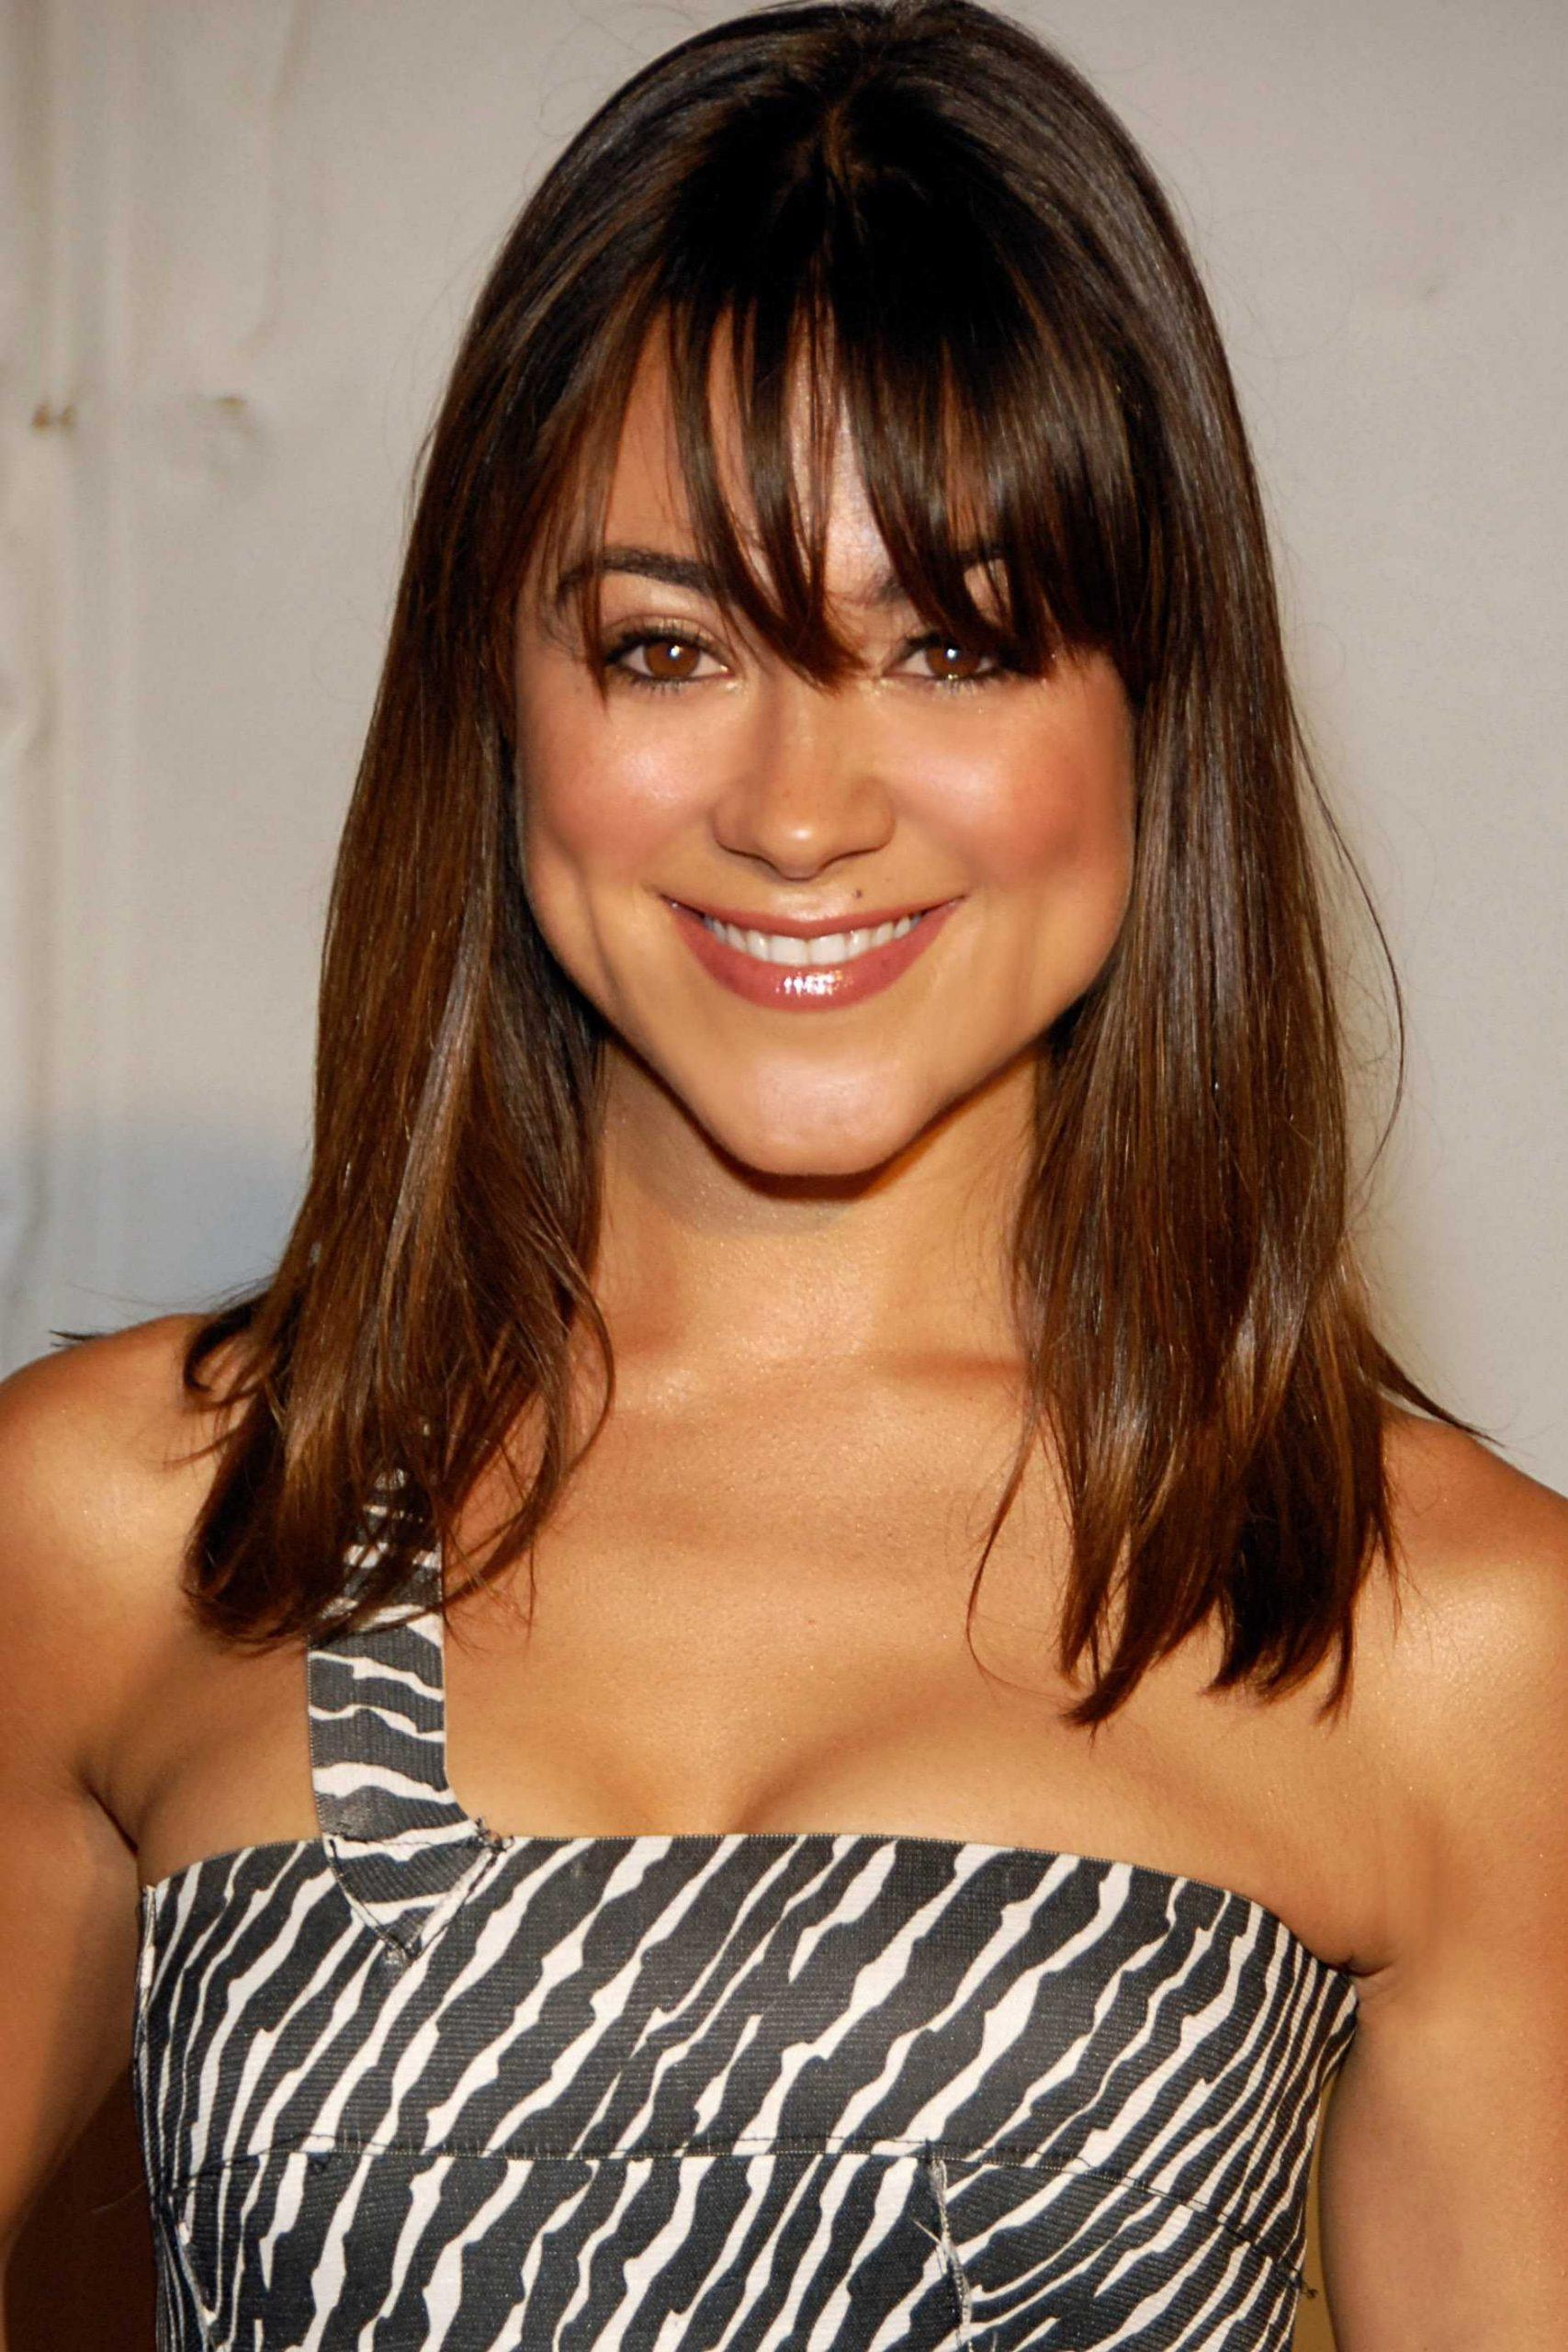 Camille Guaty big busty pics